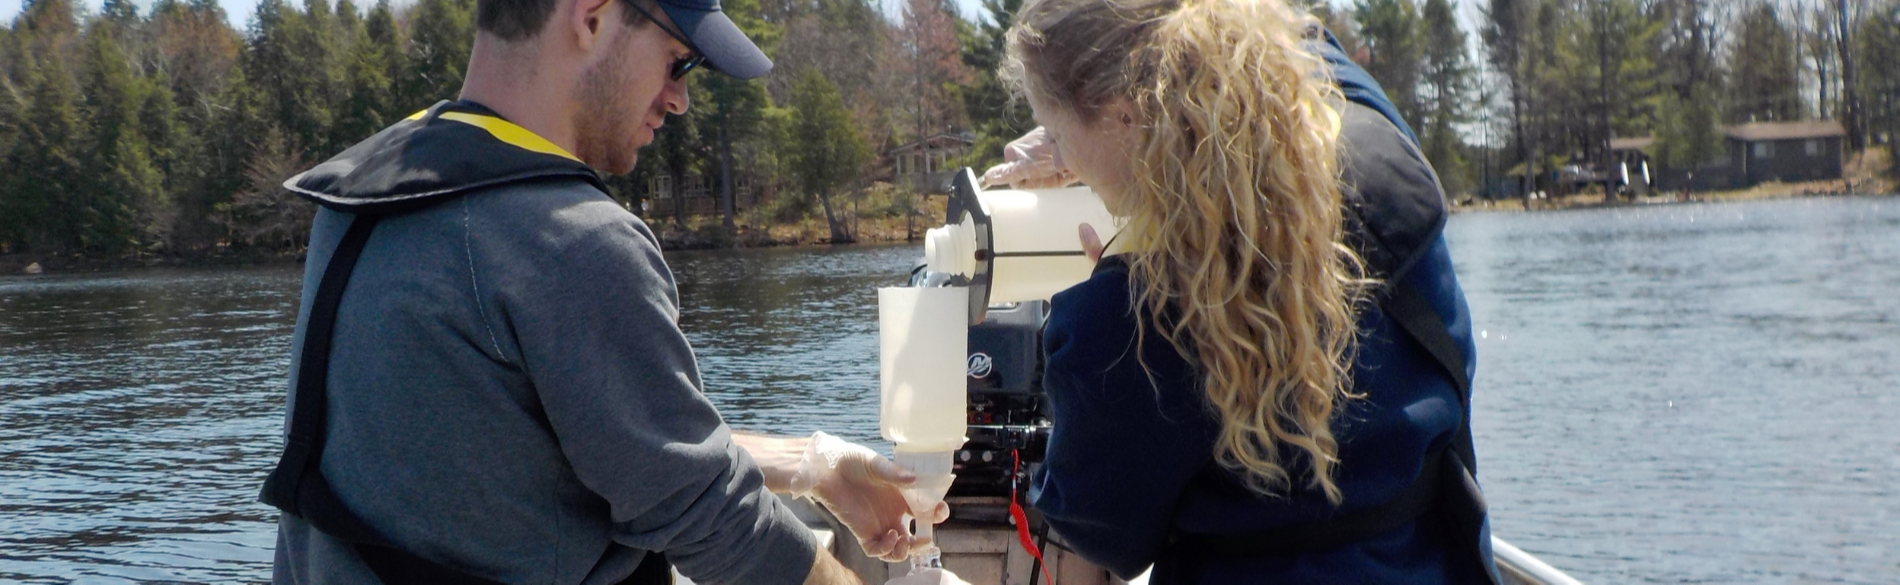 two summer students conducting water sampling